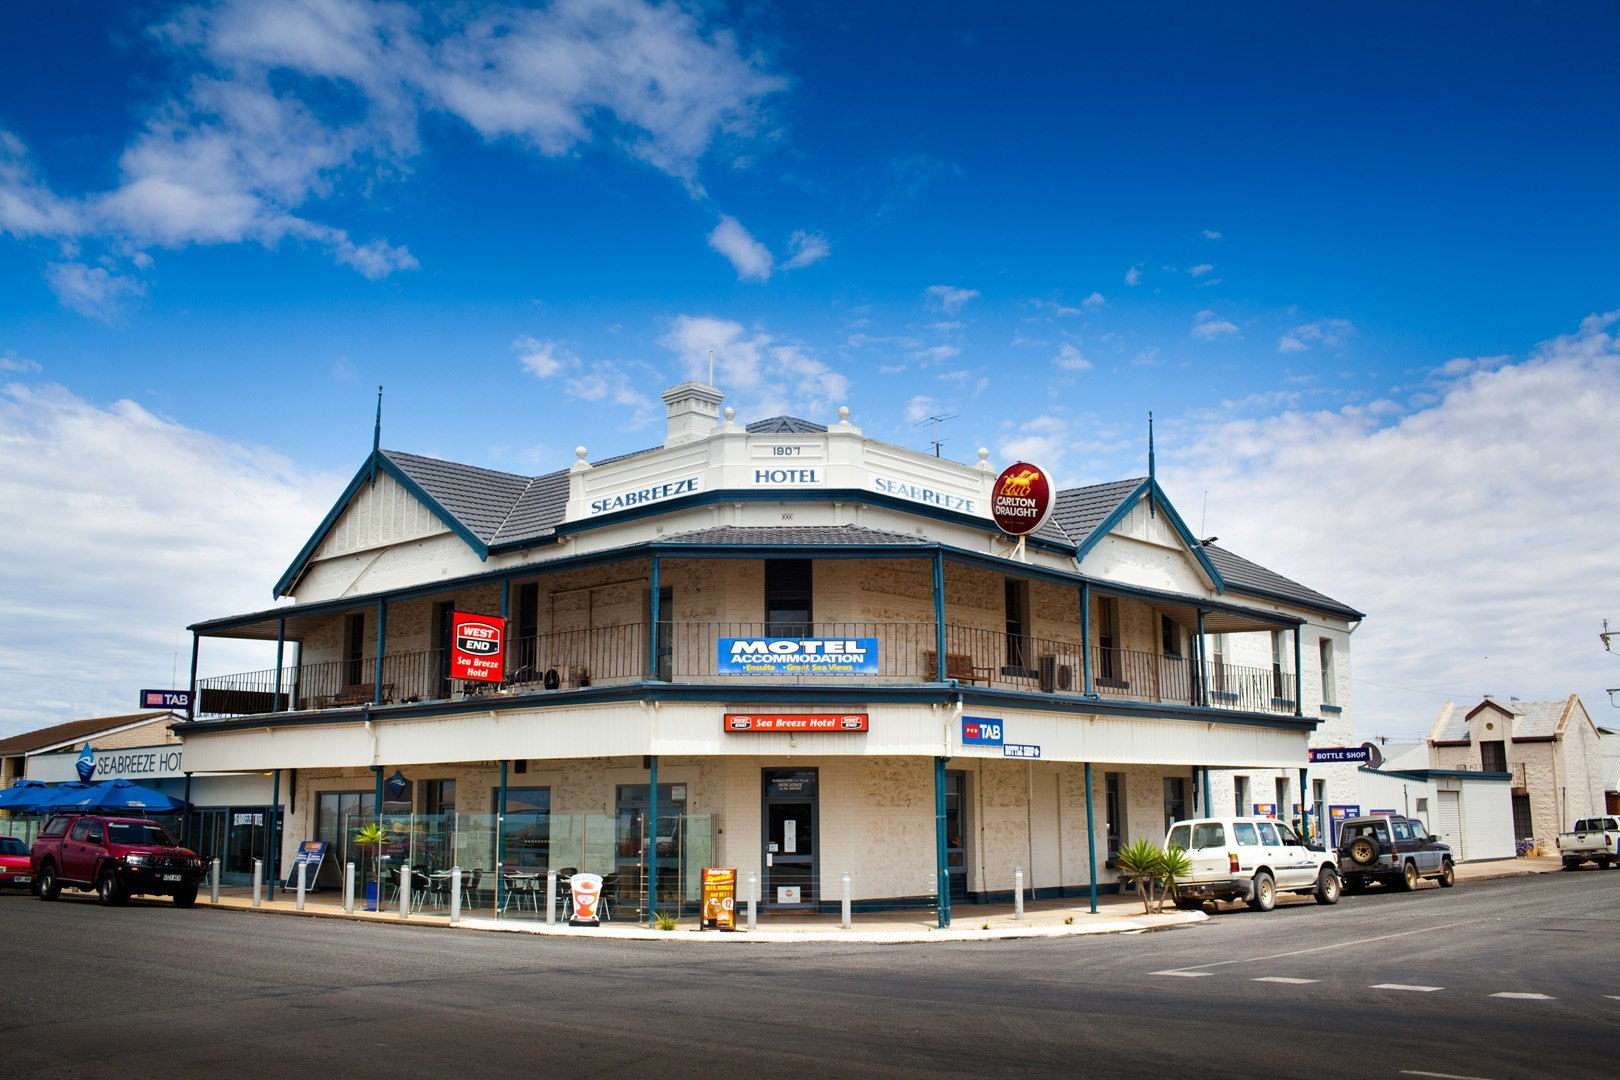 Tumby Bay visitor information